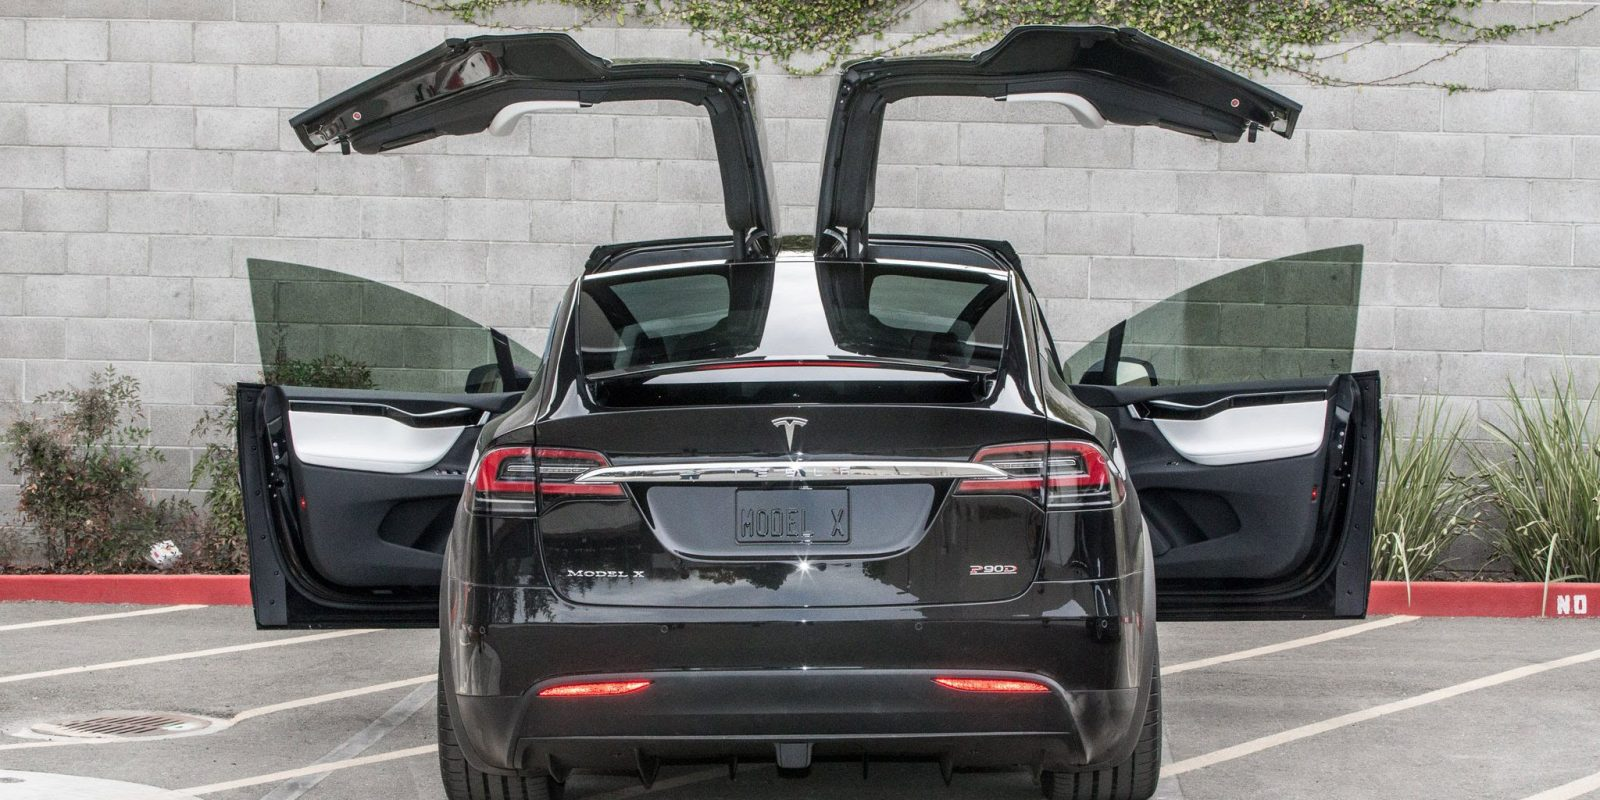 Tesla Doors are Ineffective and Faulty